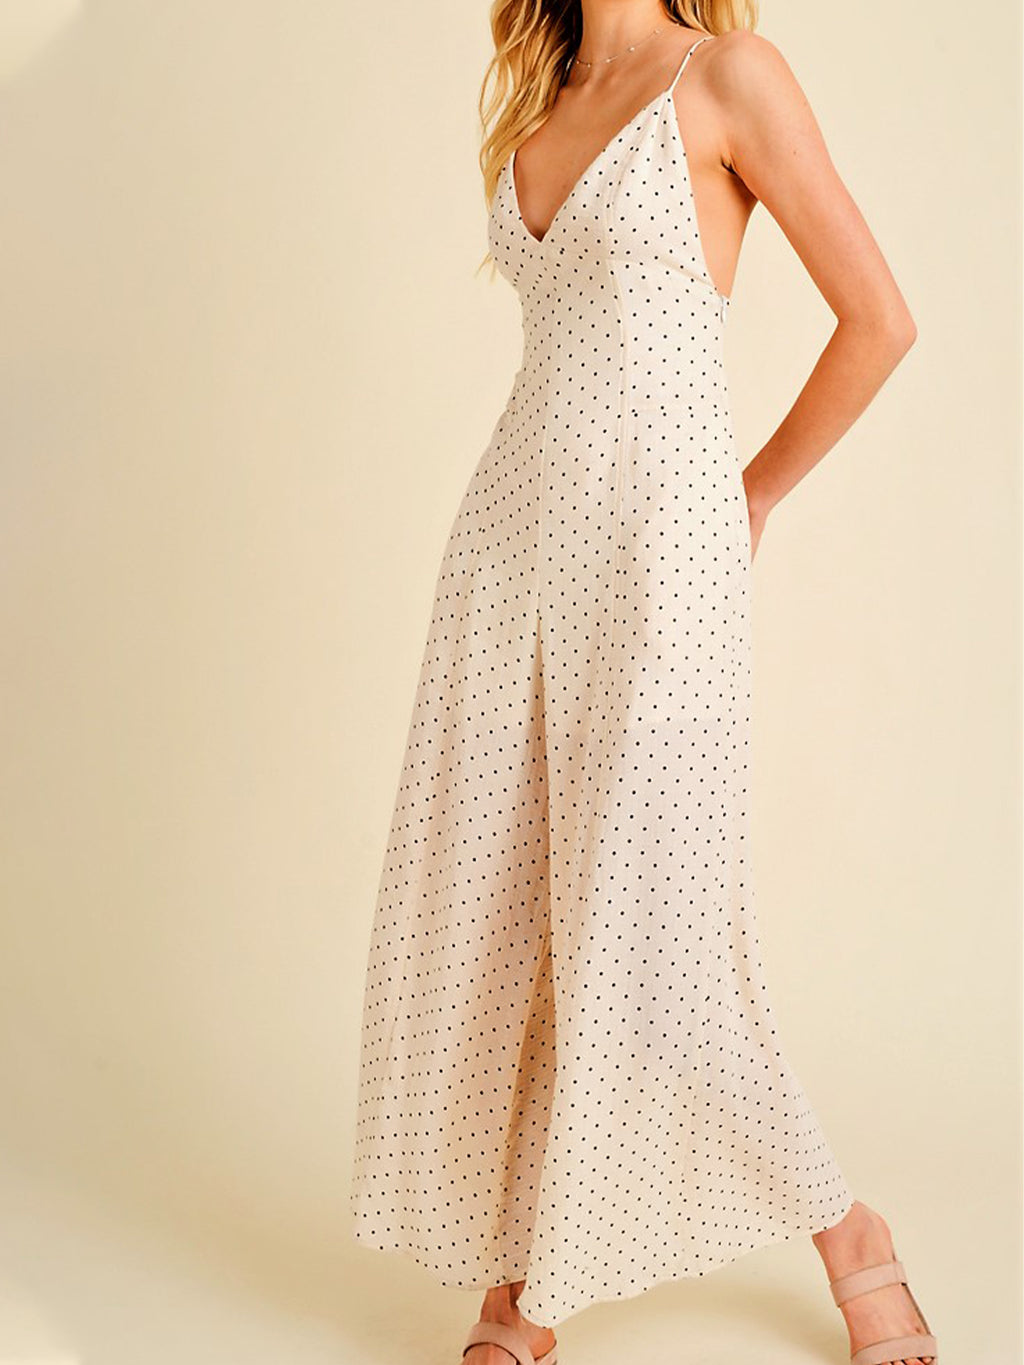 Darling Polka Dot Jumpsuit - Stitch And Feather